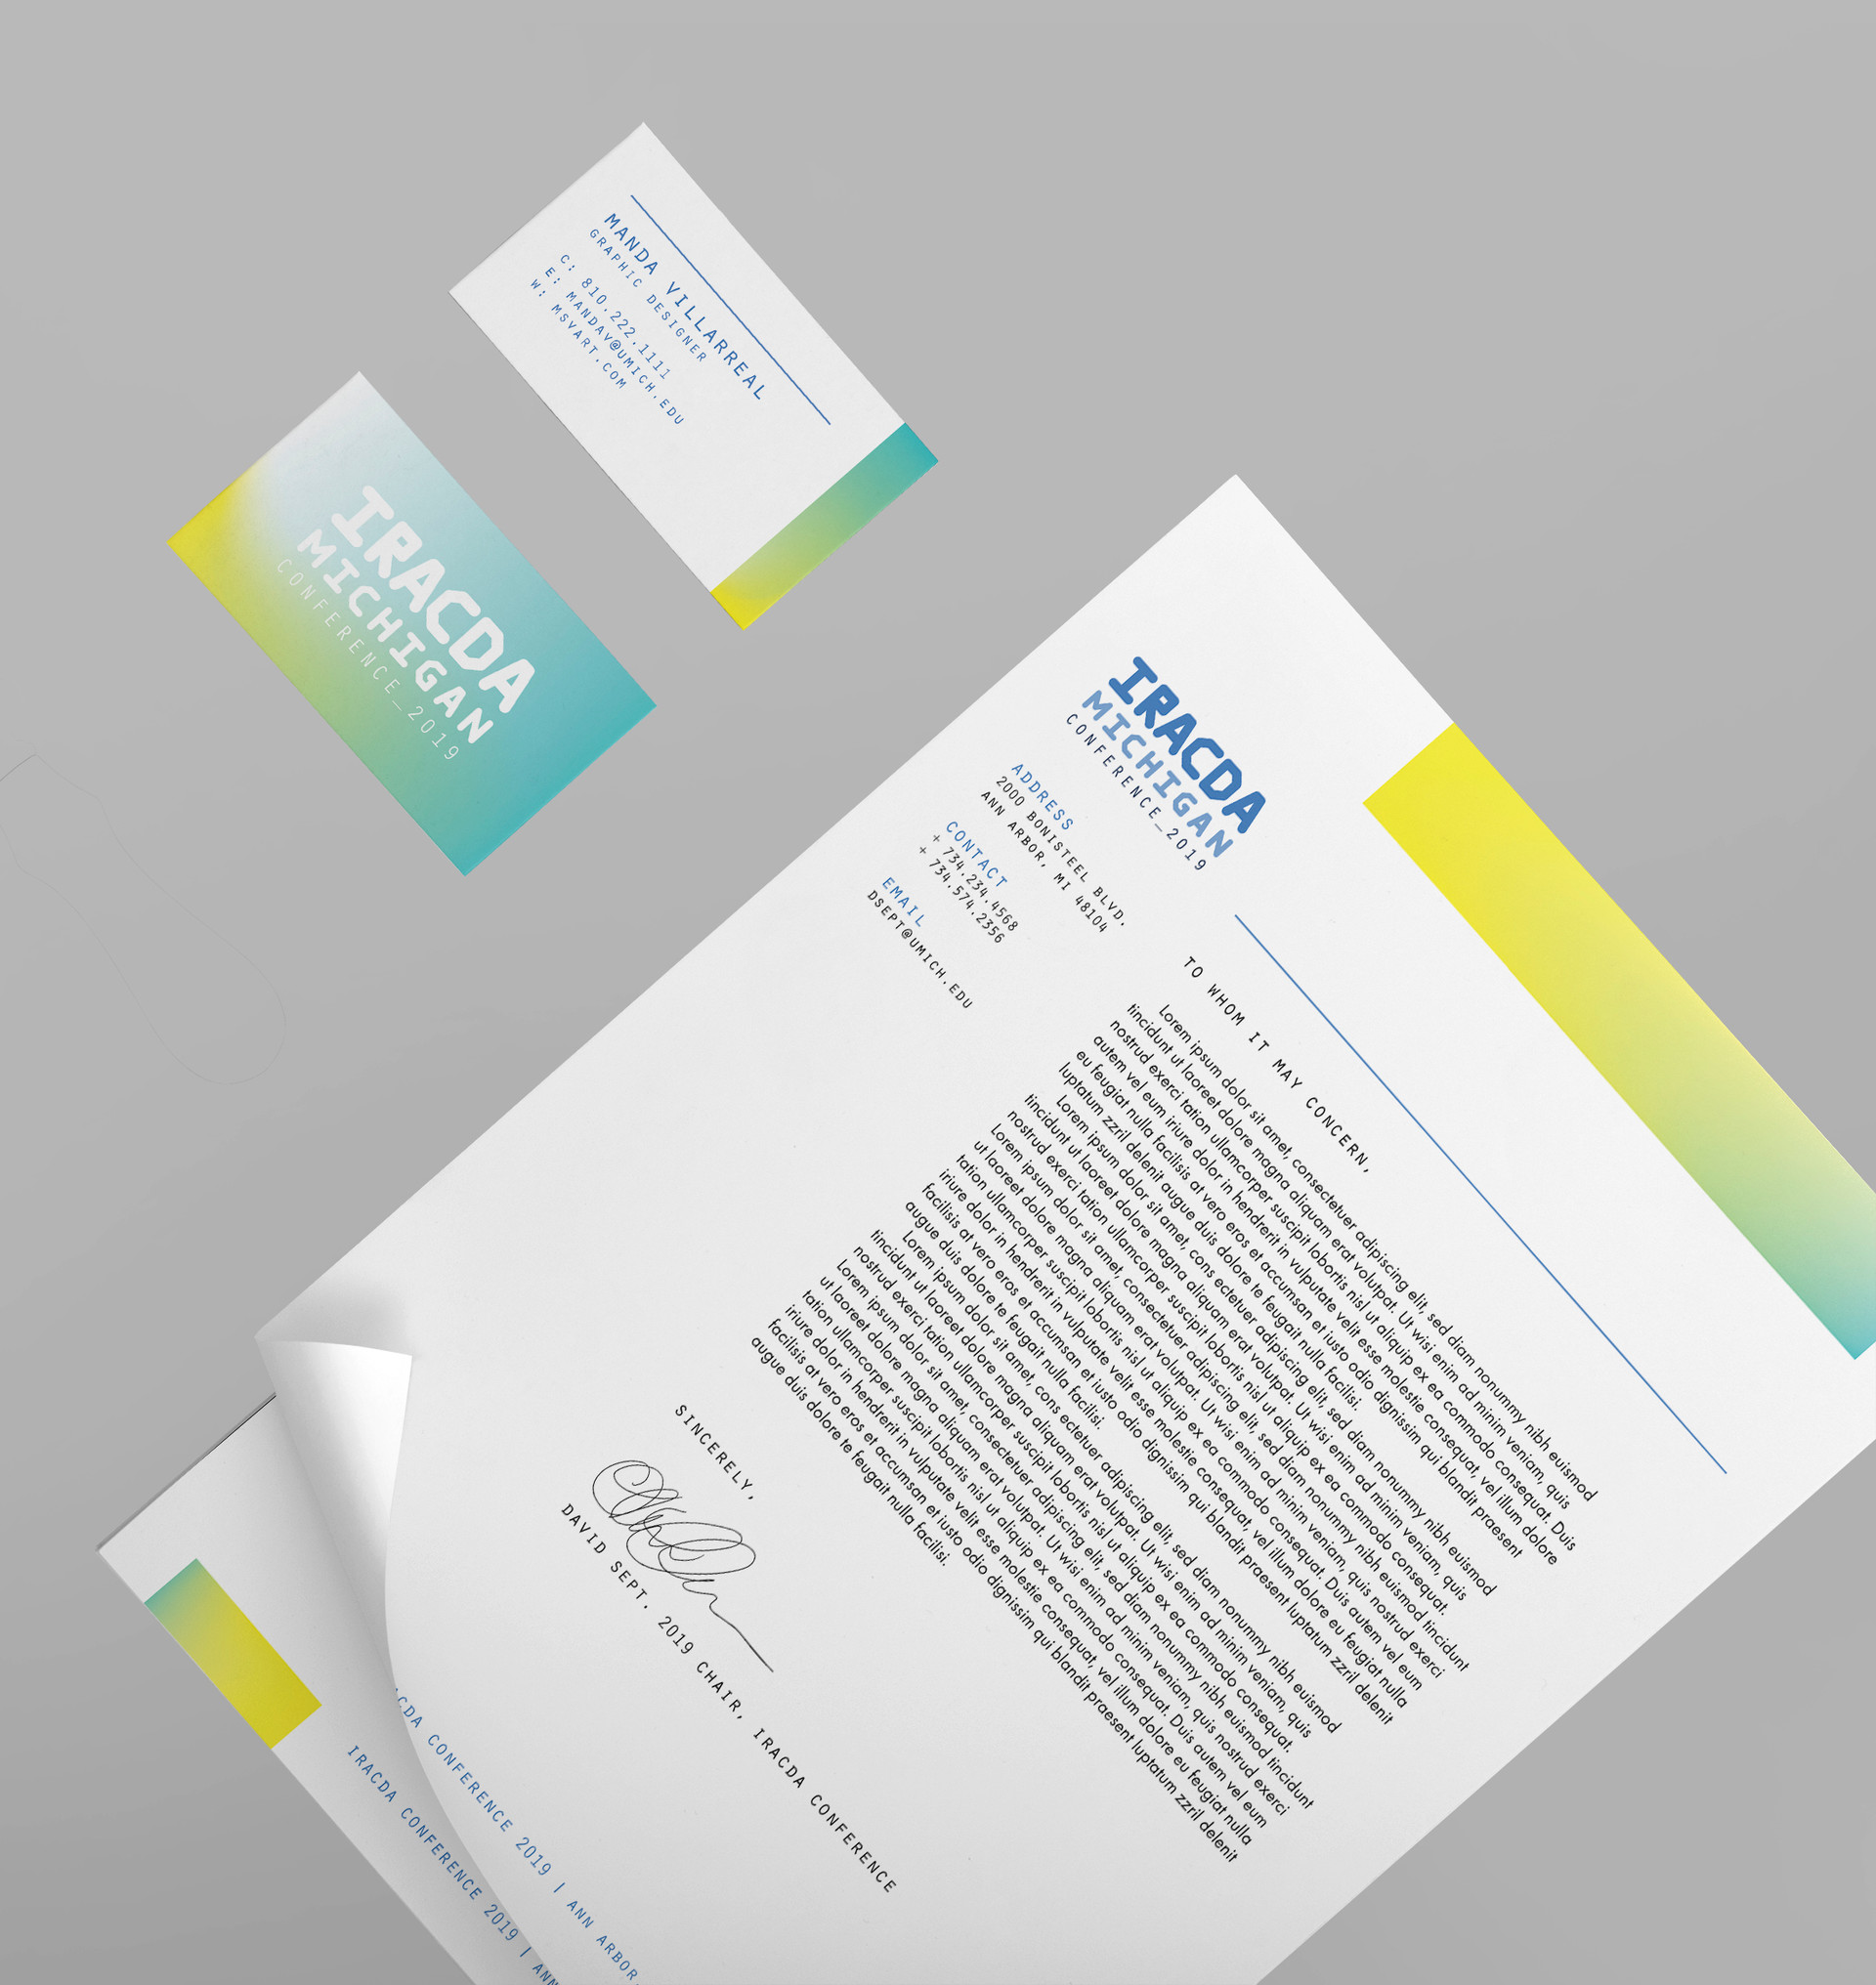 IRACDA stationery